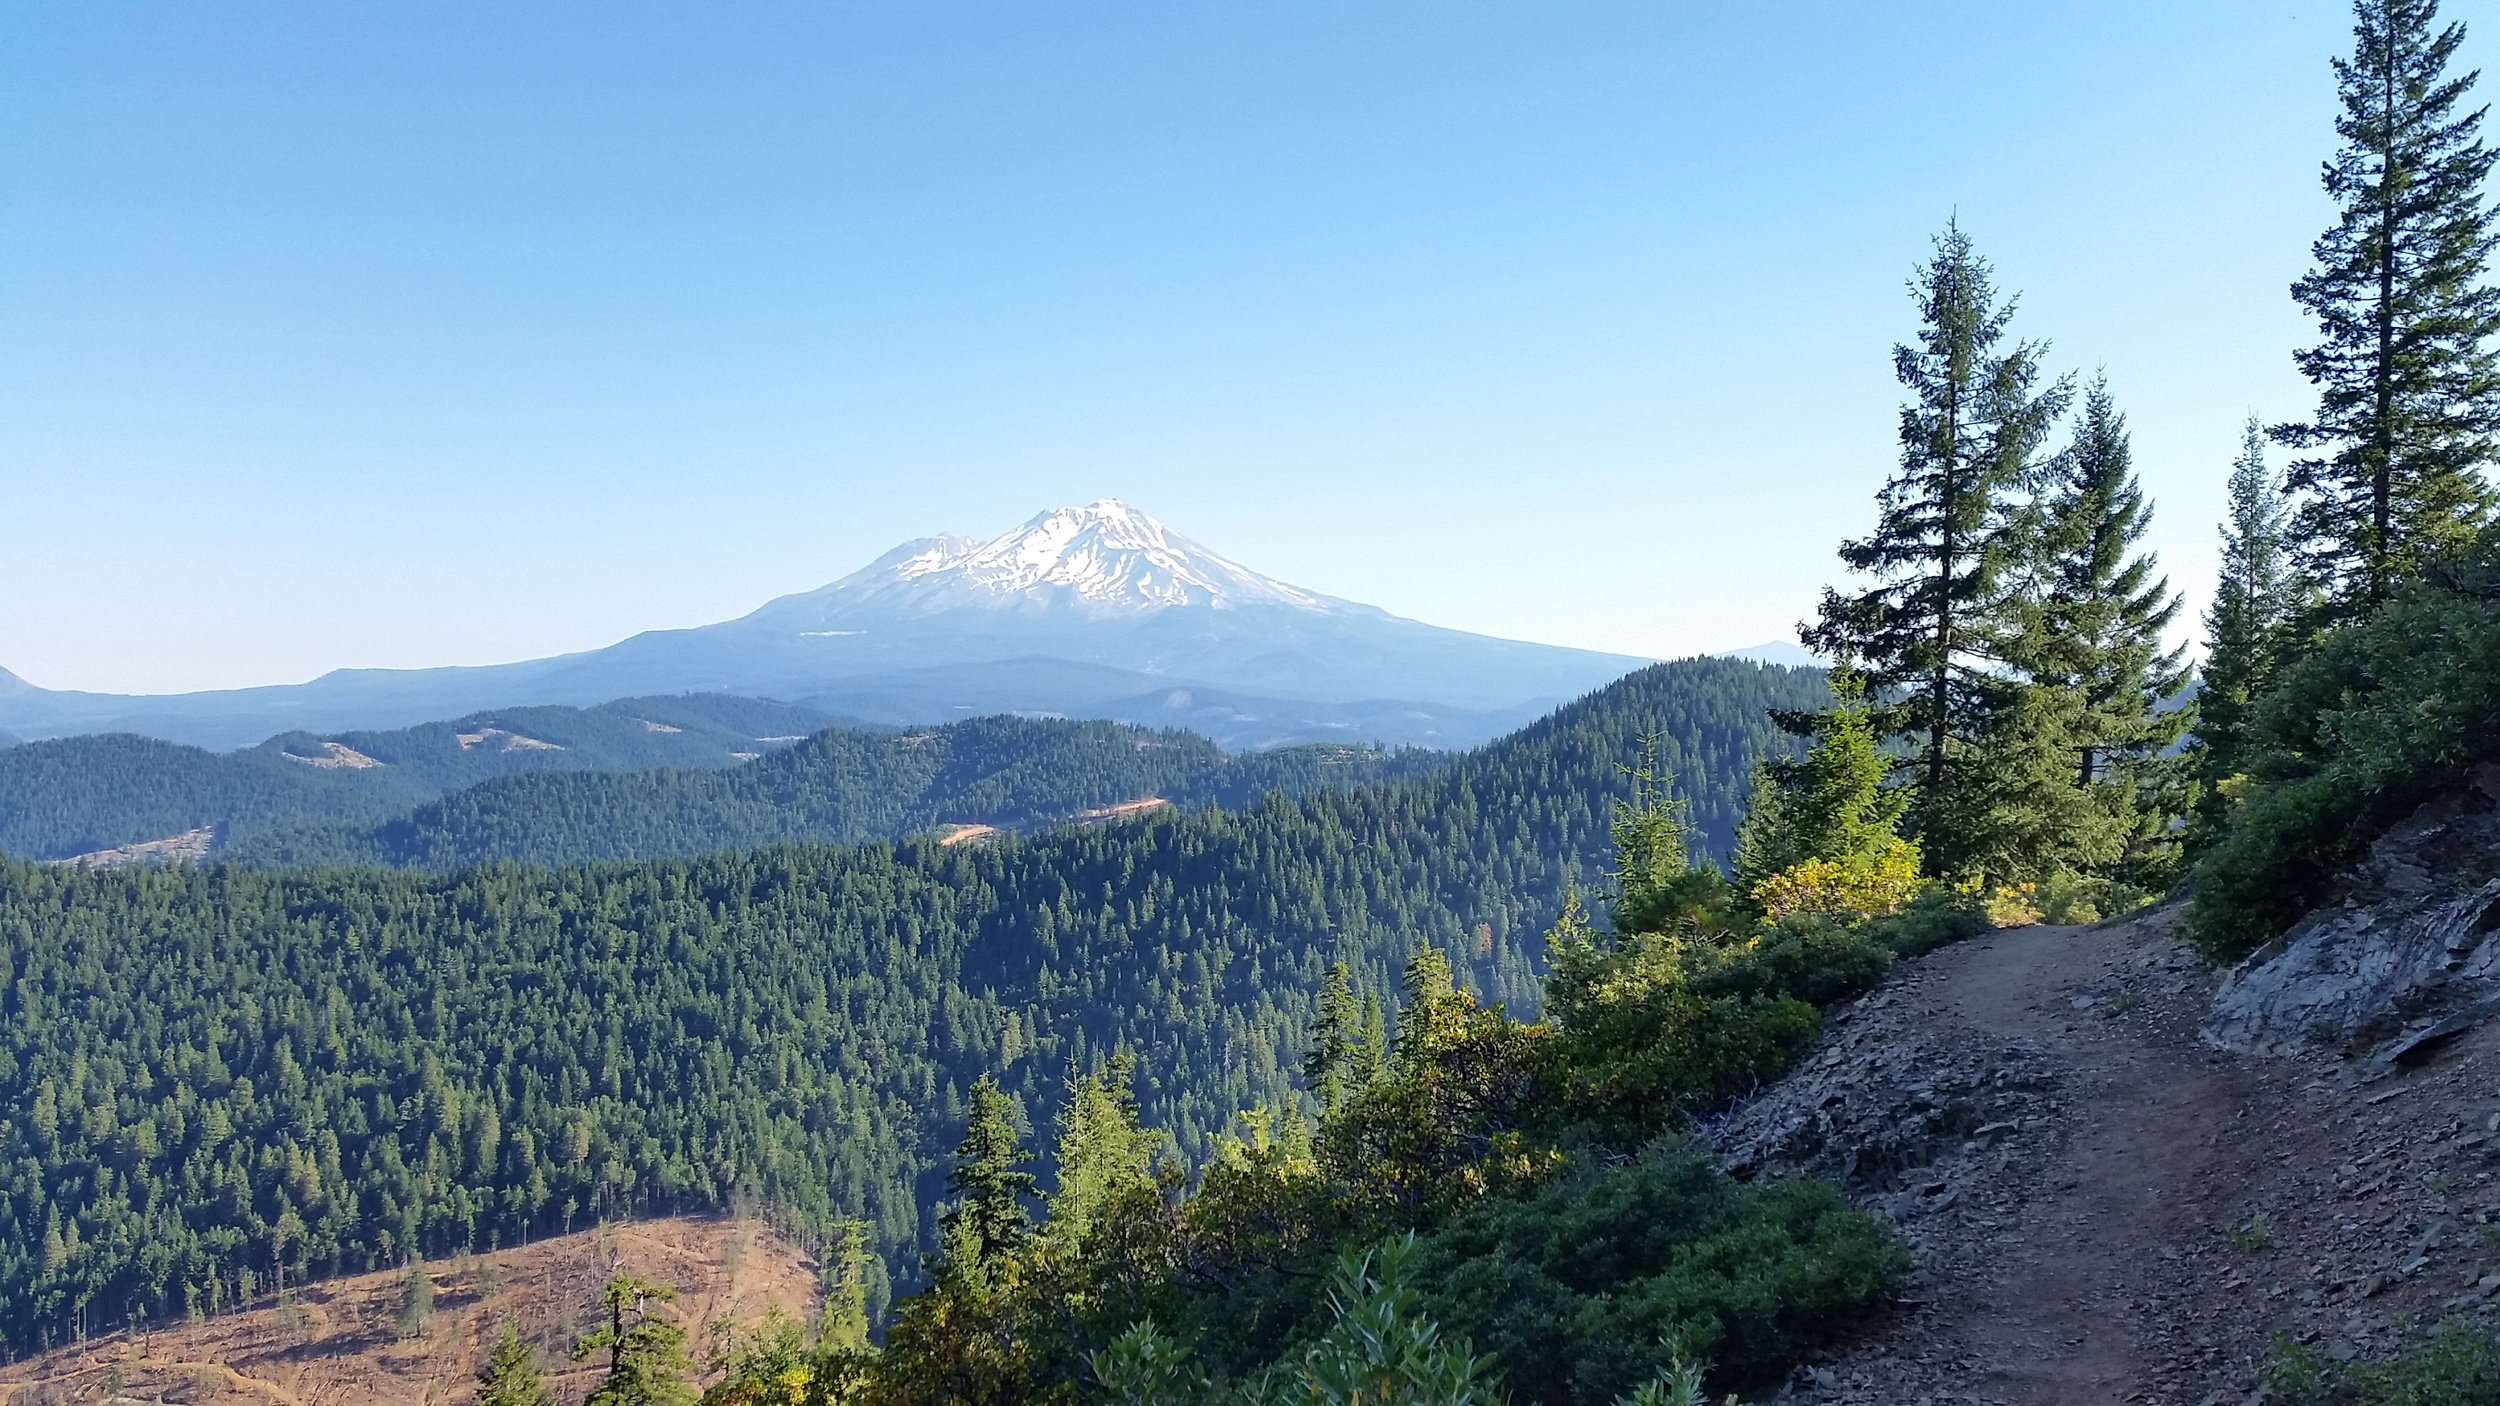 Mt. Shasta would be a common fixture in my horizon for at least 400 miles